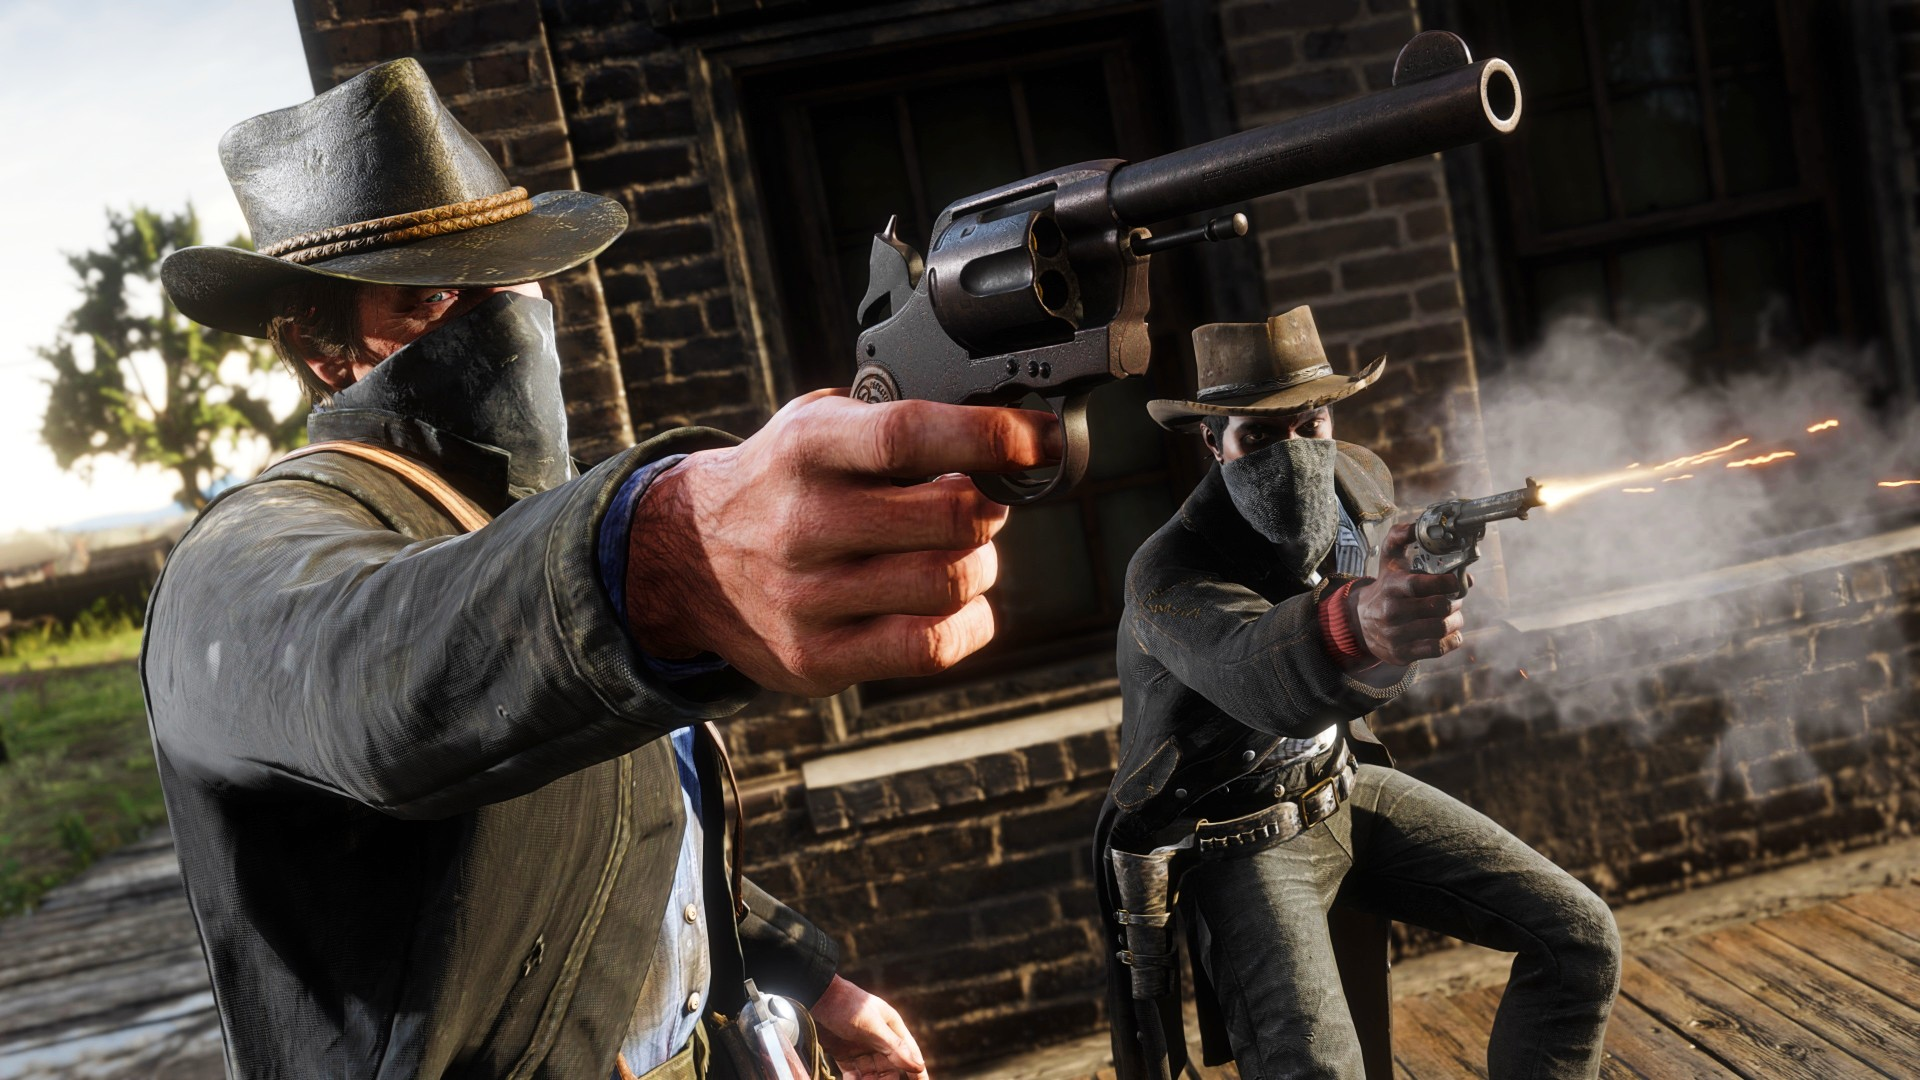 This Red Dead Redemption 2 mod lets you operate a gunsmith business